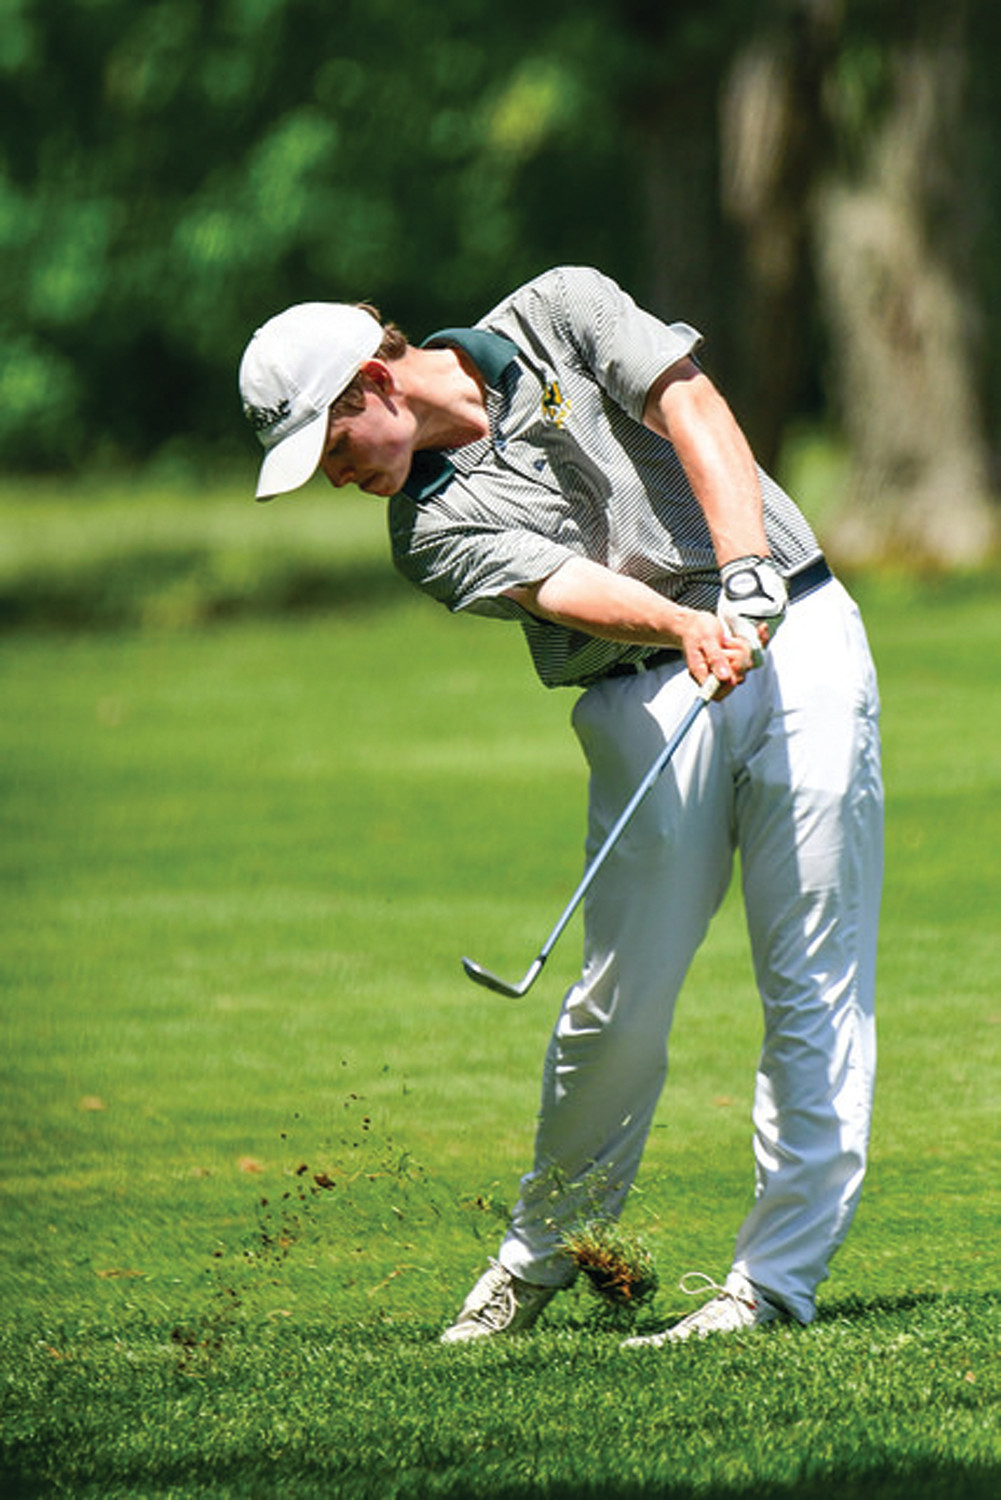 STATE CHAMP: Bishop Hendricken's Colin Sutyla takes a shot during the 2018 state championship.  Sutyla won the state individual tournament.